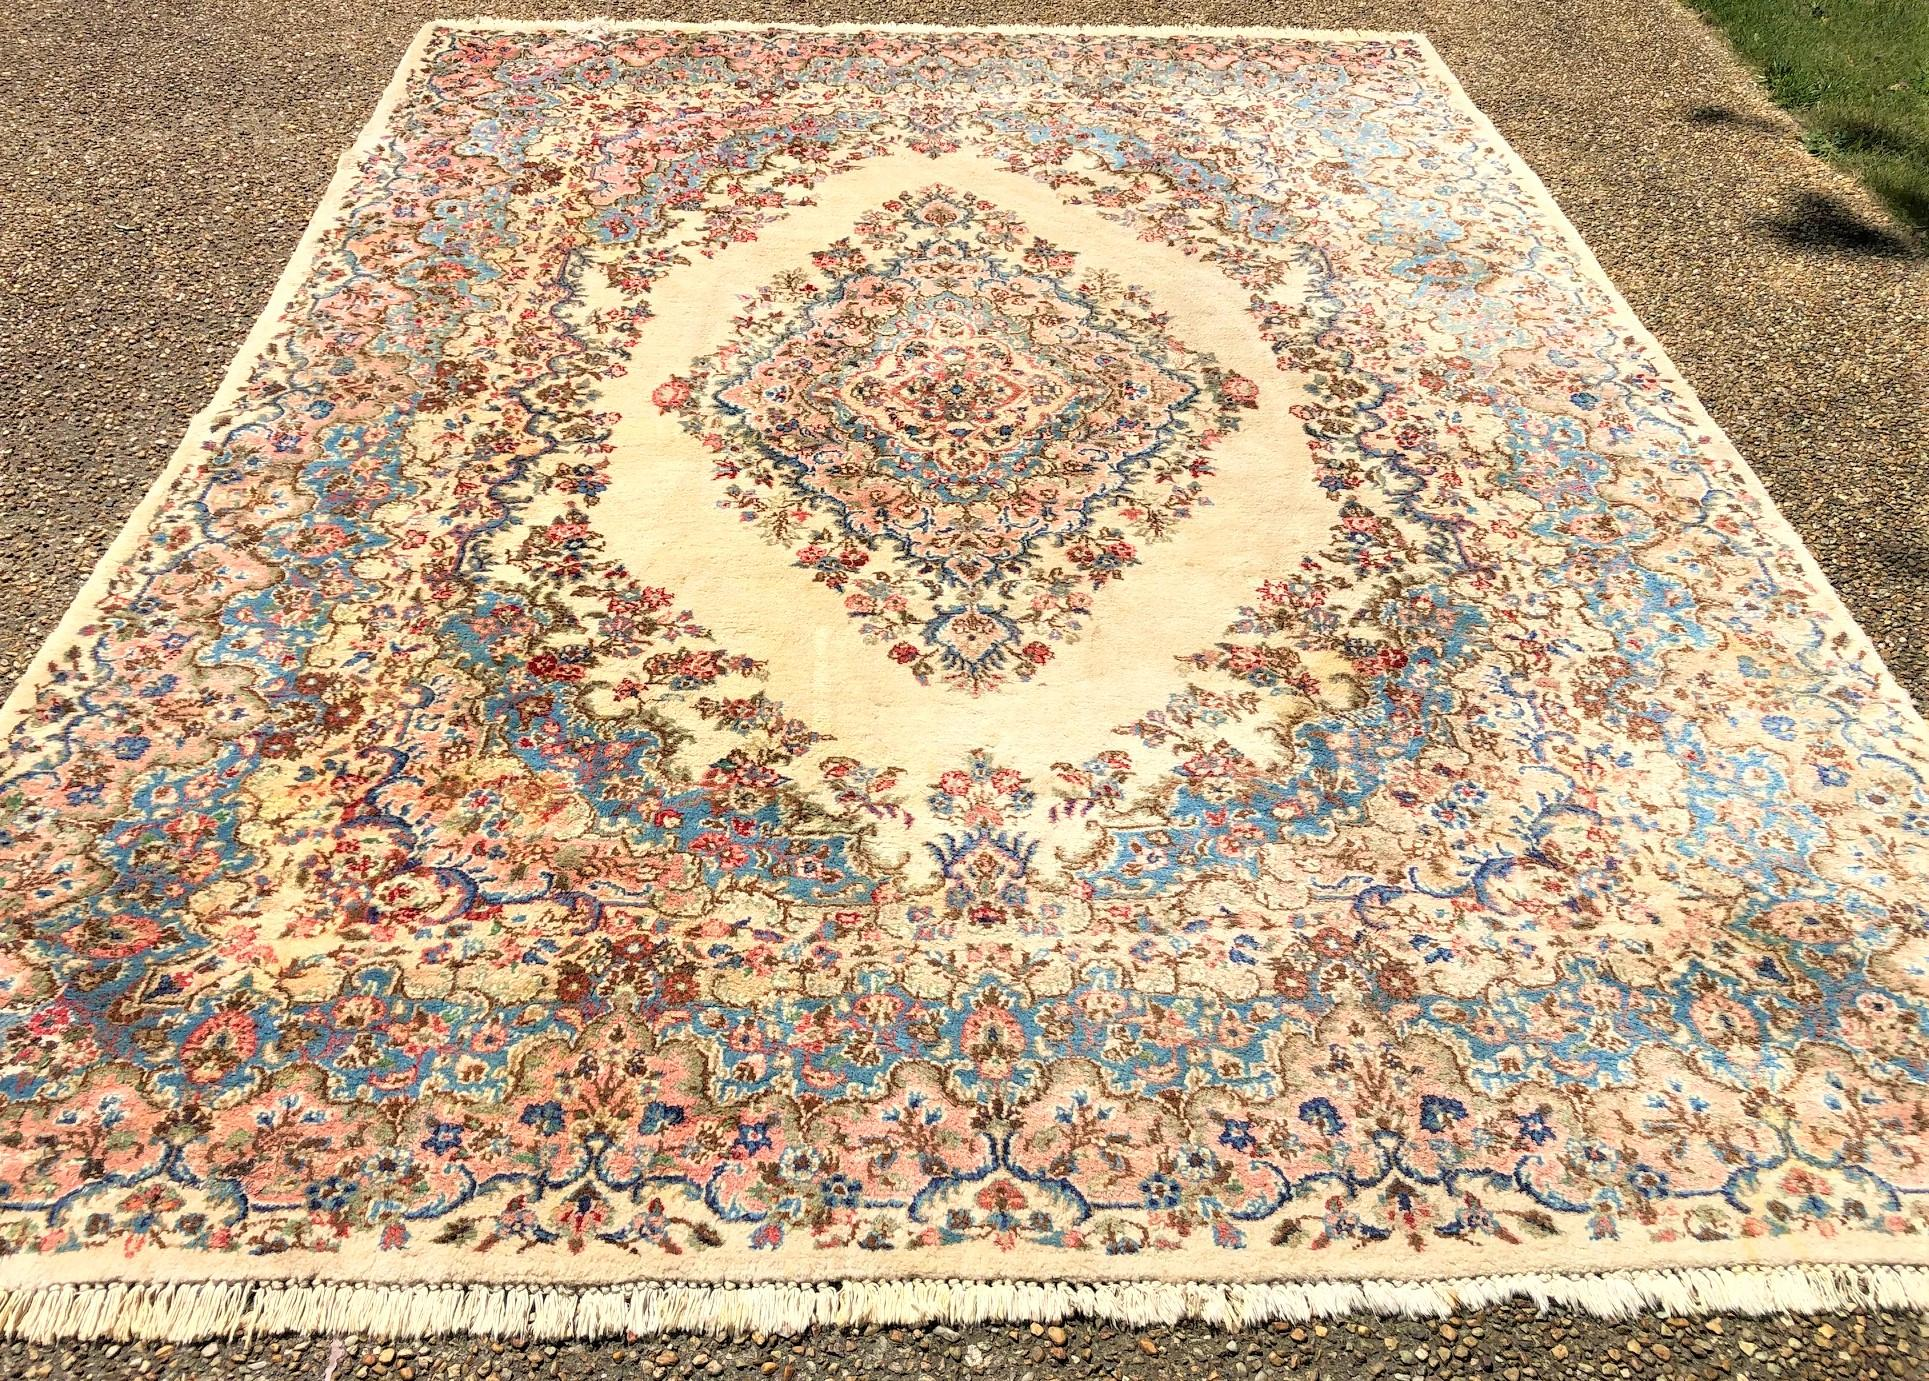 PERSIAN KERMAN HAND KNOTTED RUG - 8.11 x 11.11